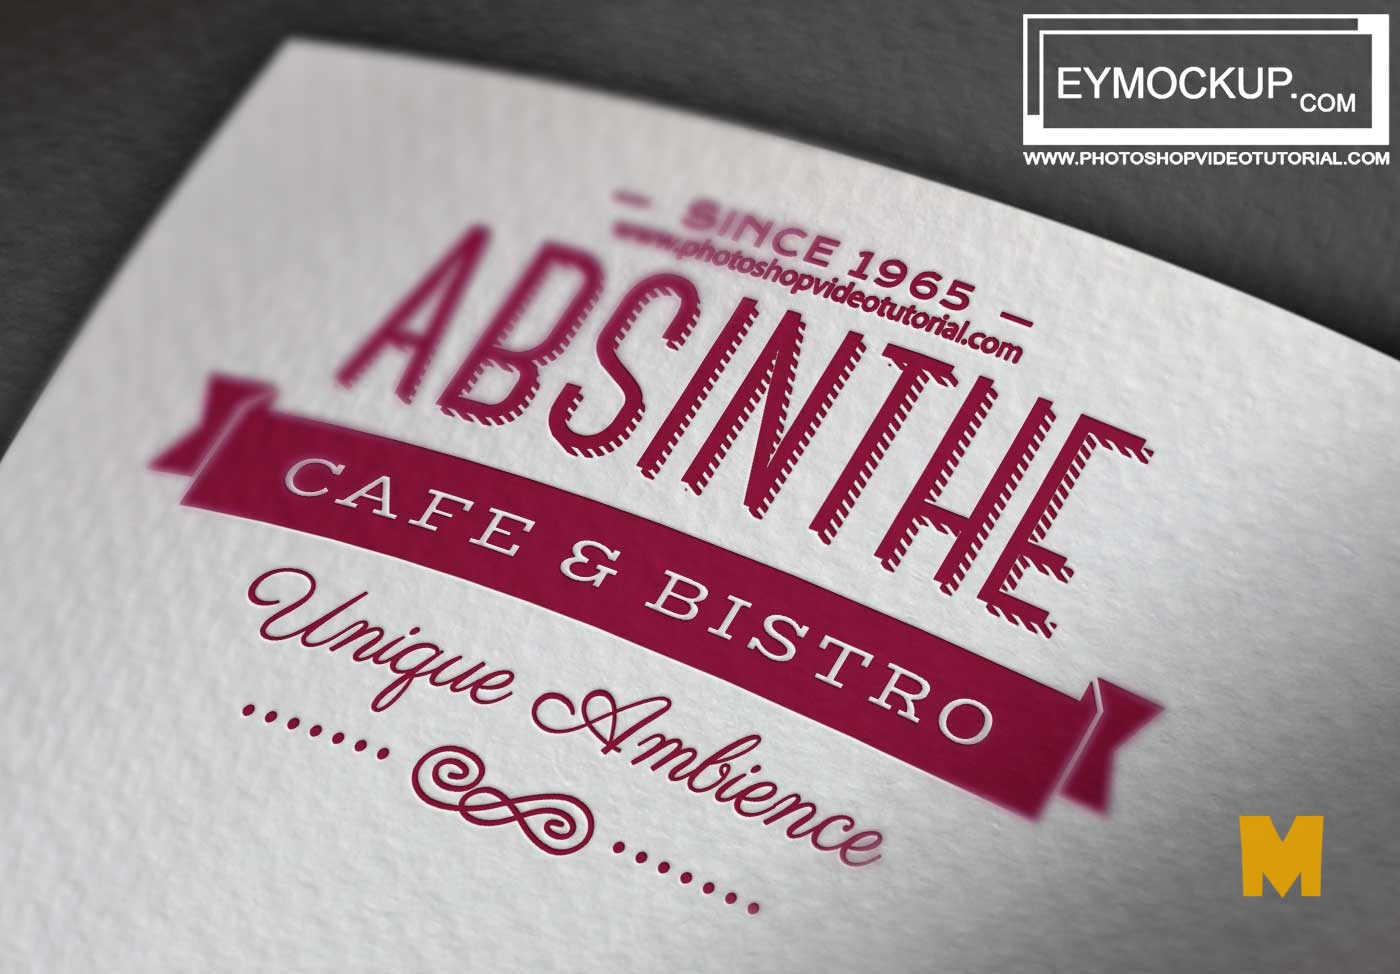 Awesome Logo Mockup Template